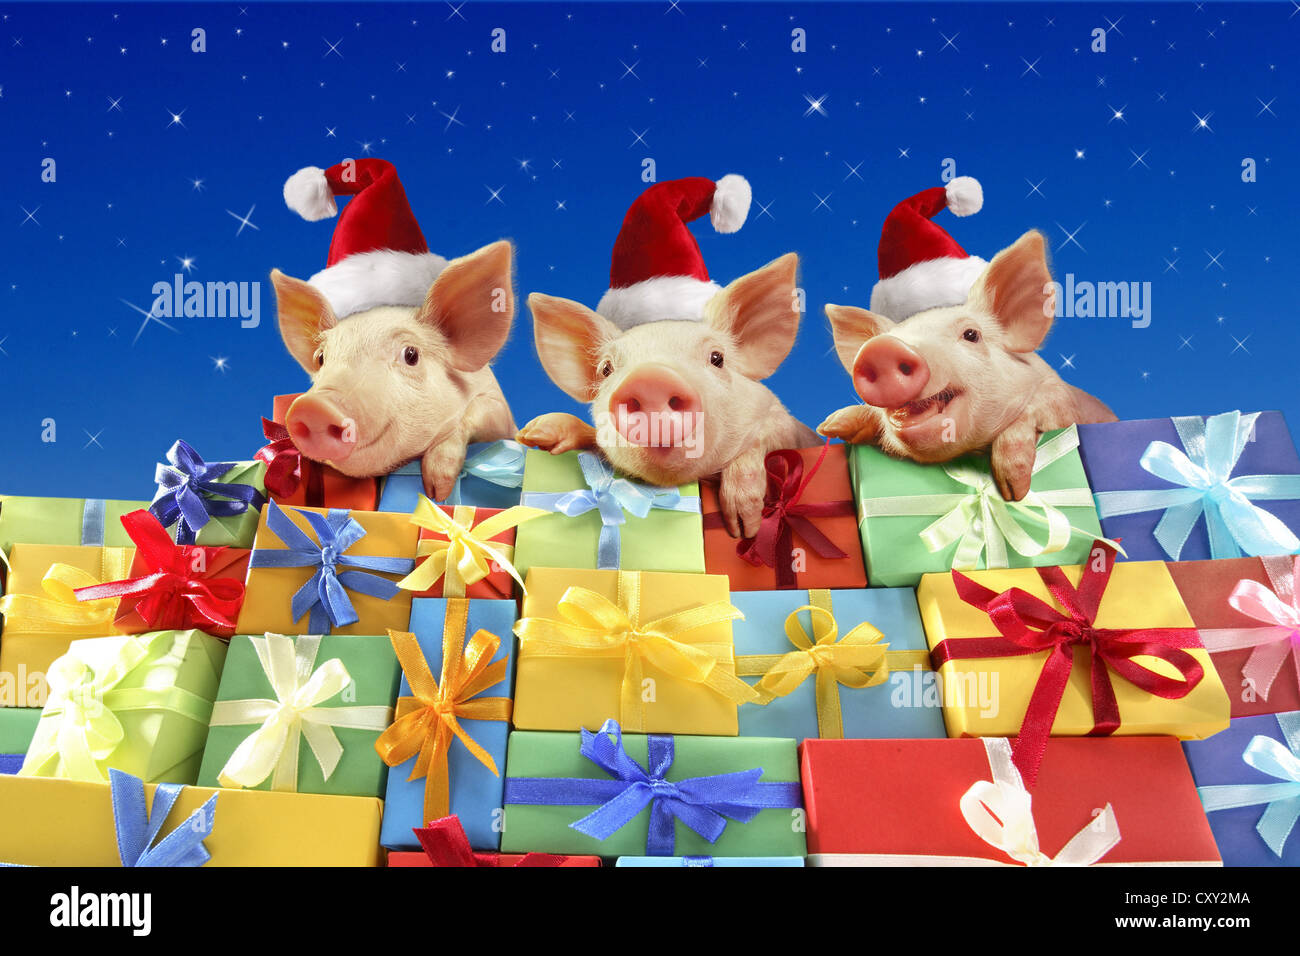 Piglets wearing Santa hats sitting on a pile of gifts - Stock Image